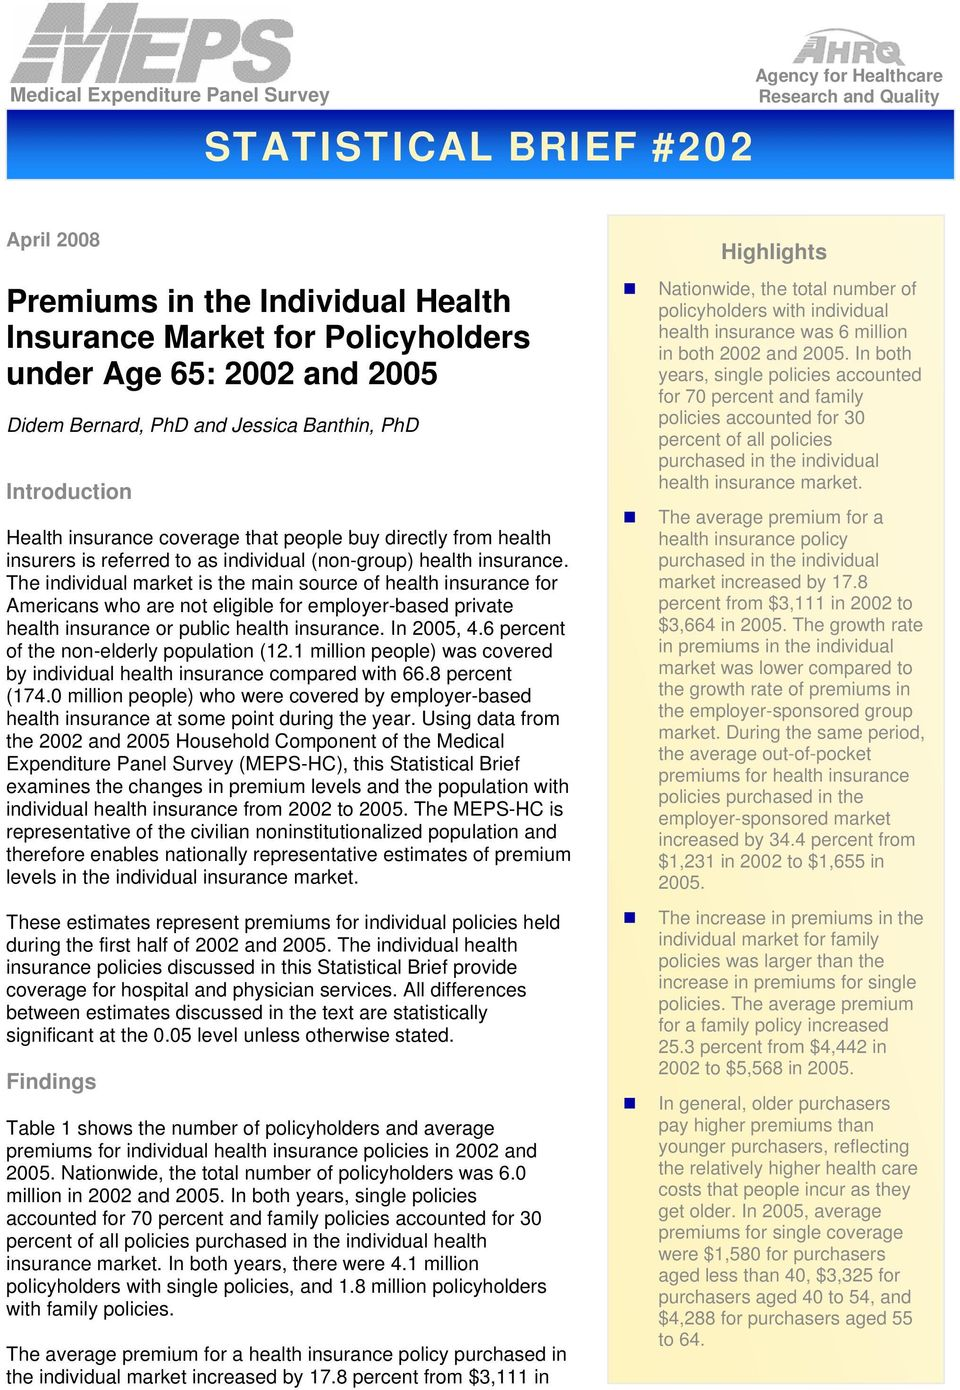 The individual market is the main source of health insurance for Americans who are not eligible for employer-based private health insurance or public health insurance. In 2005, 4.